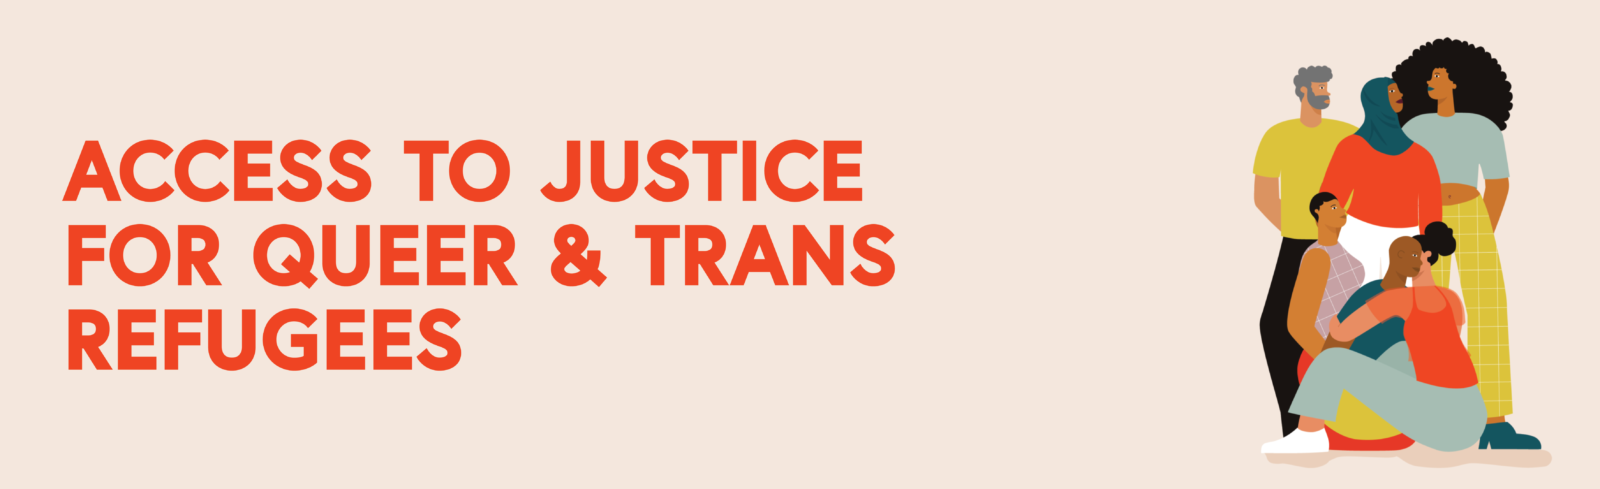 access to justice for queer and trans refugees. Illustration of a group of people of colour.